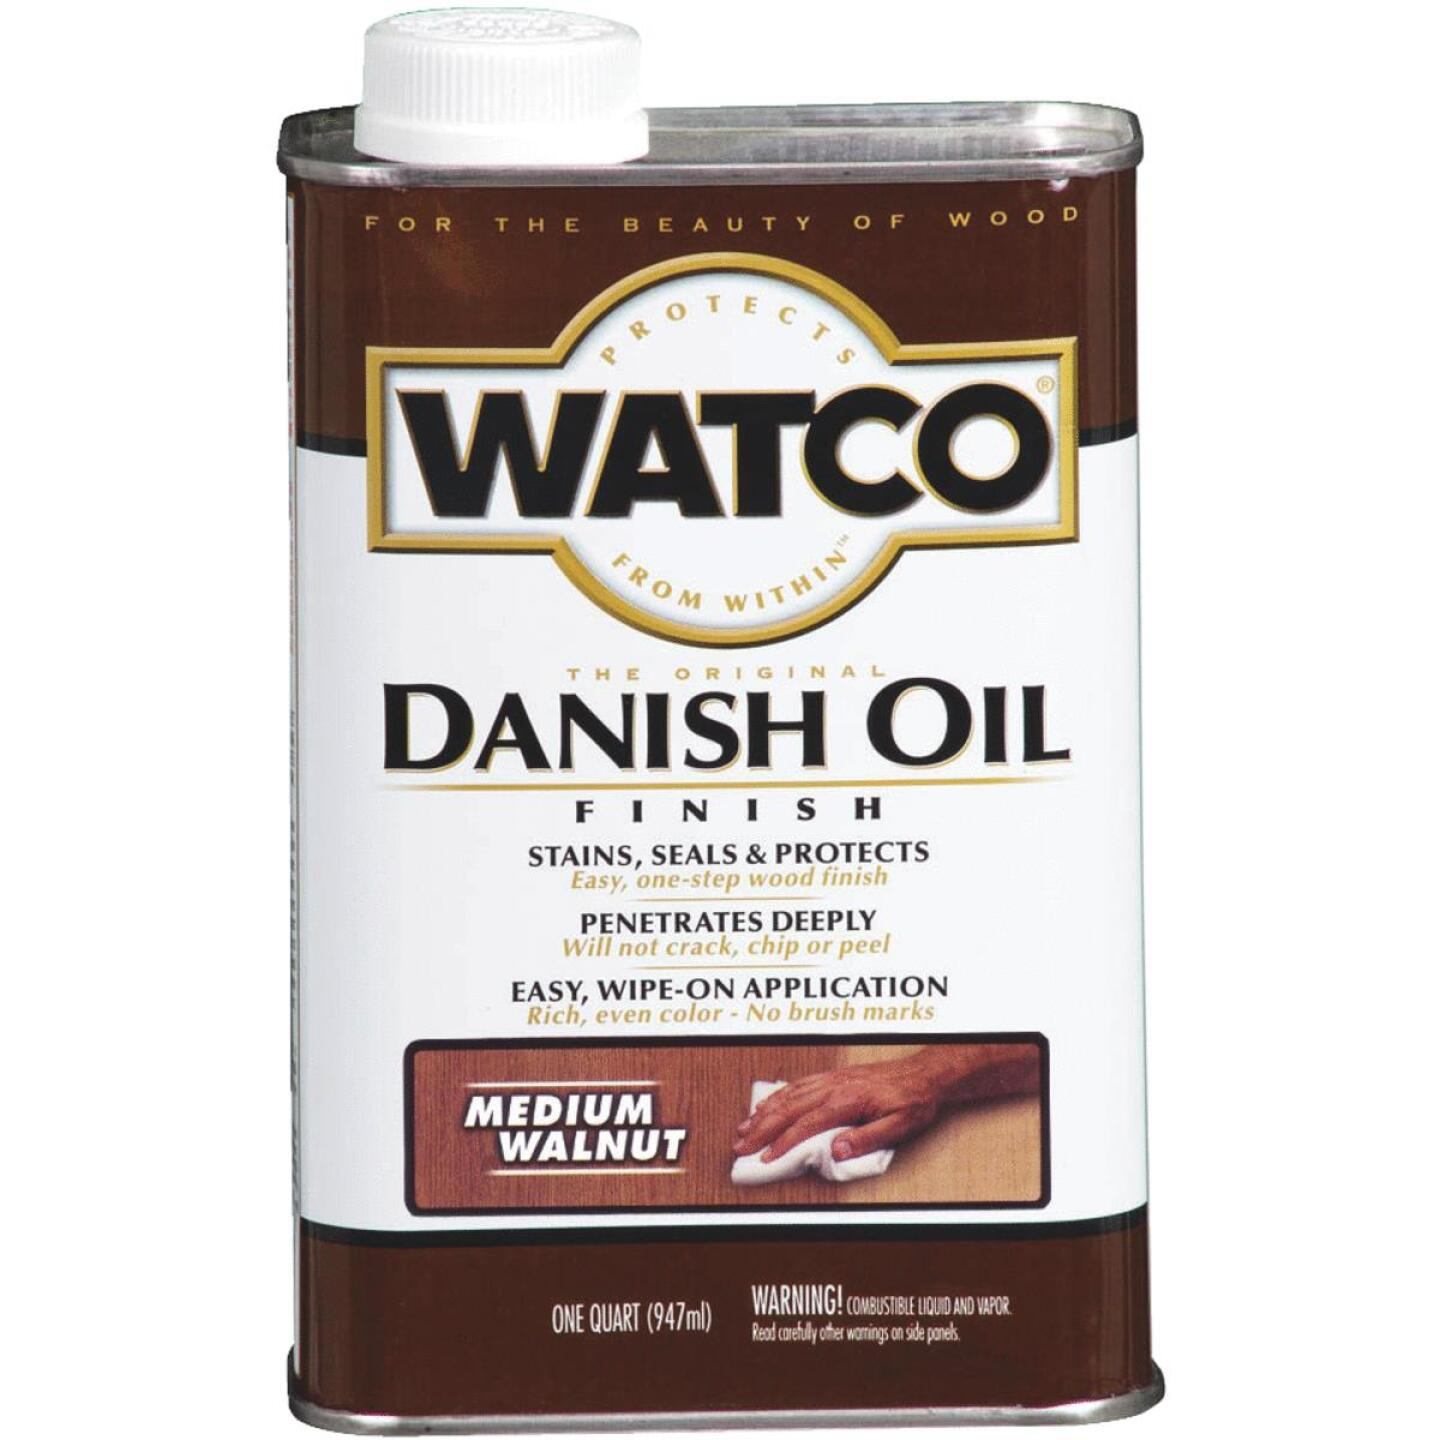 Watco Danish 1 Qt. Low VOC Medium Walnut Oil Finish Image 1